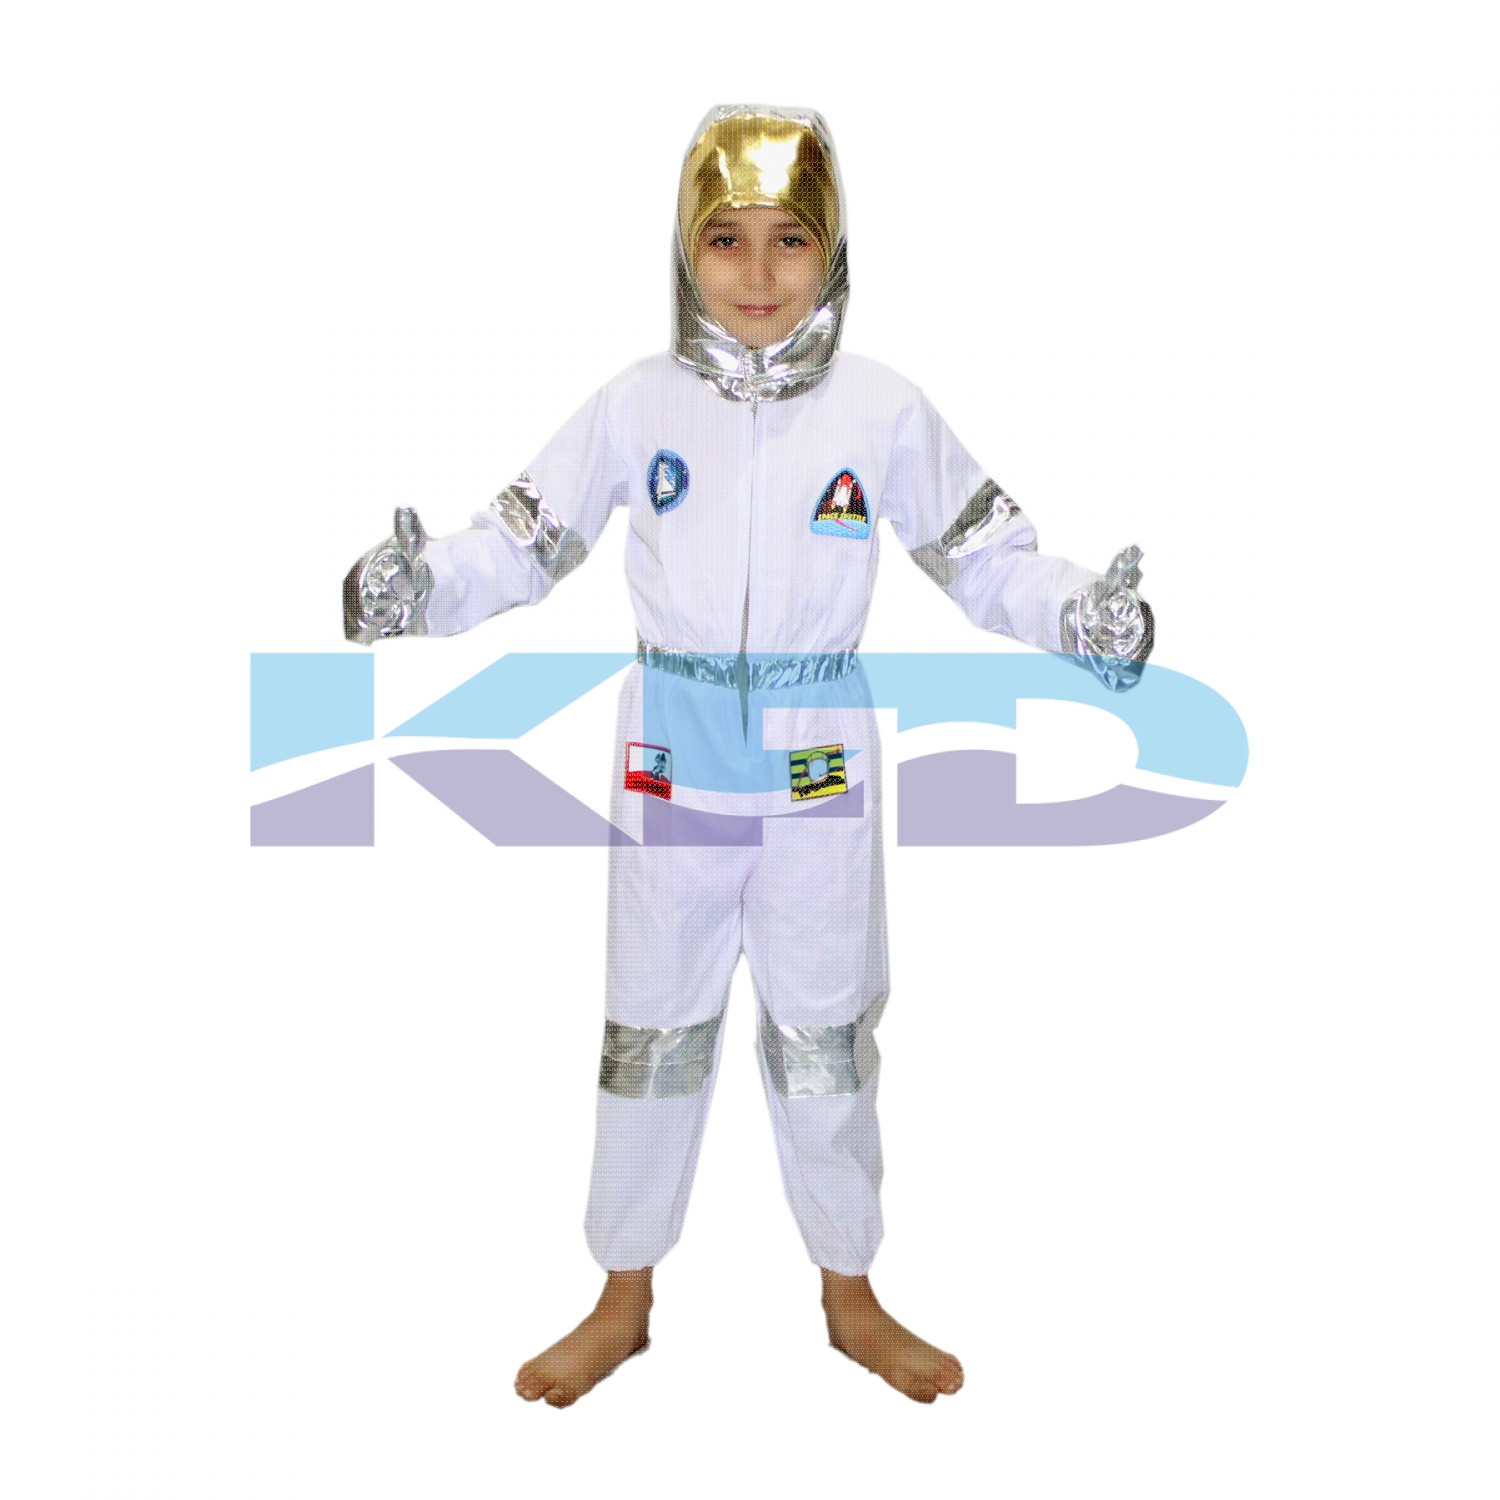 Astronaut White CosPlay Costume,Space Costume For Kids School Annual function/Theme Party/Competition/Stage Shows/Birthday Party Dress